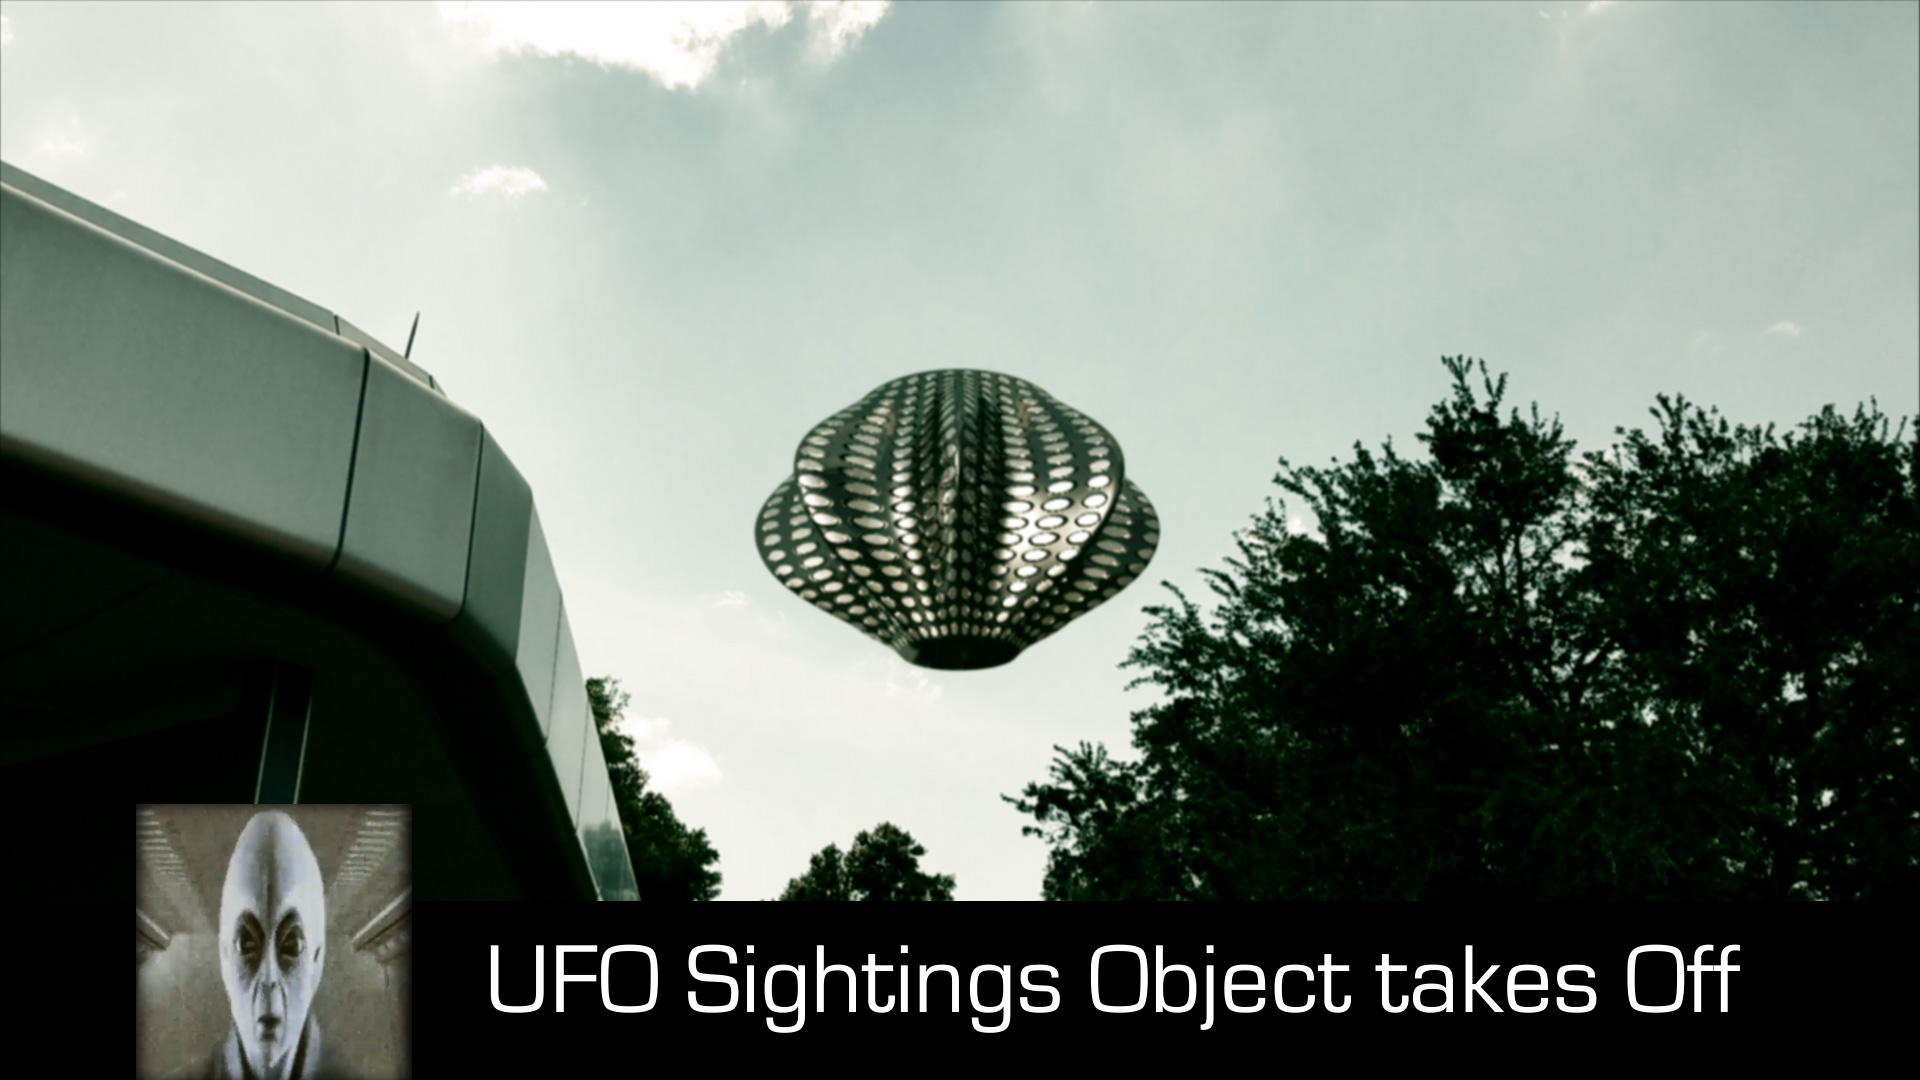 UFO Sightings Object Takes Off August 6th 2017